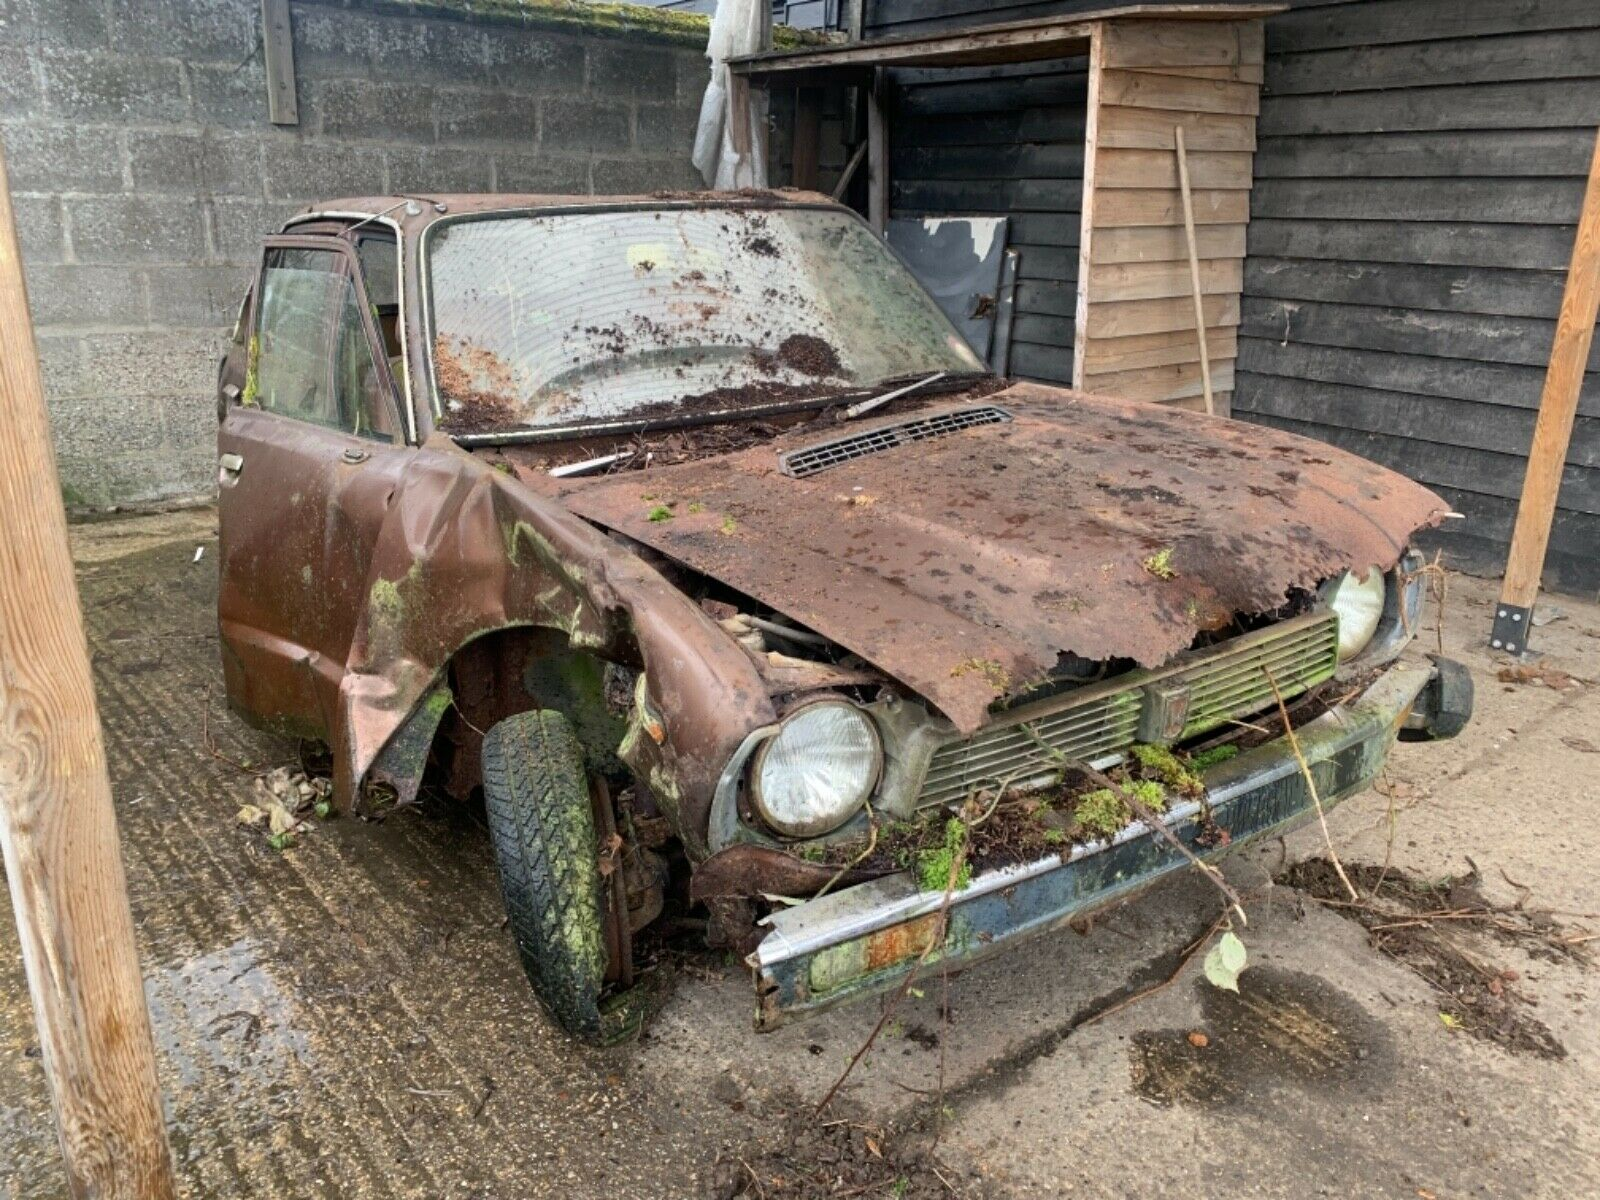 This rare Honda Civic barn find could save another